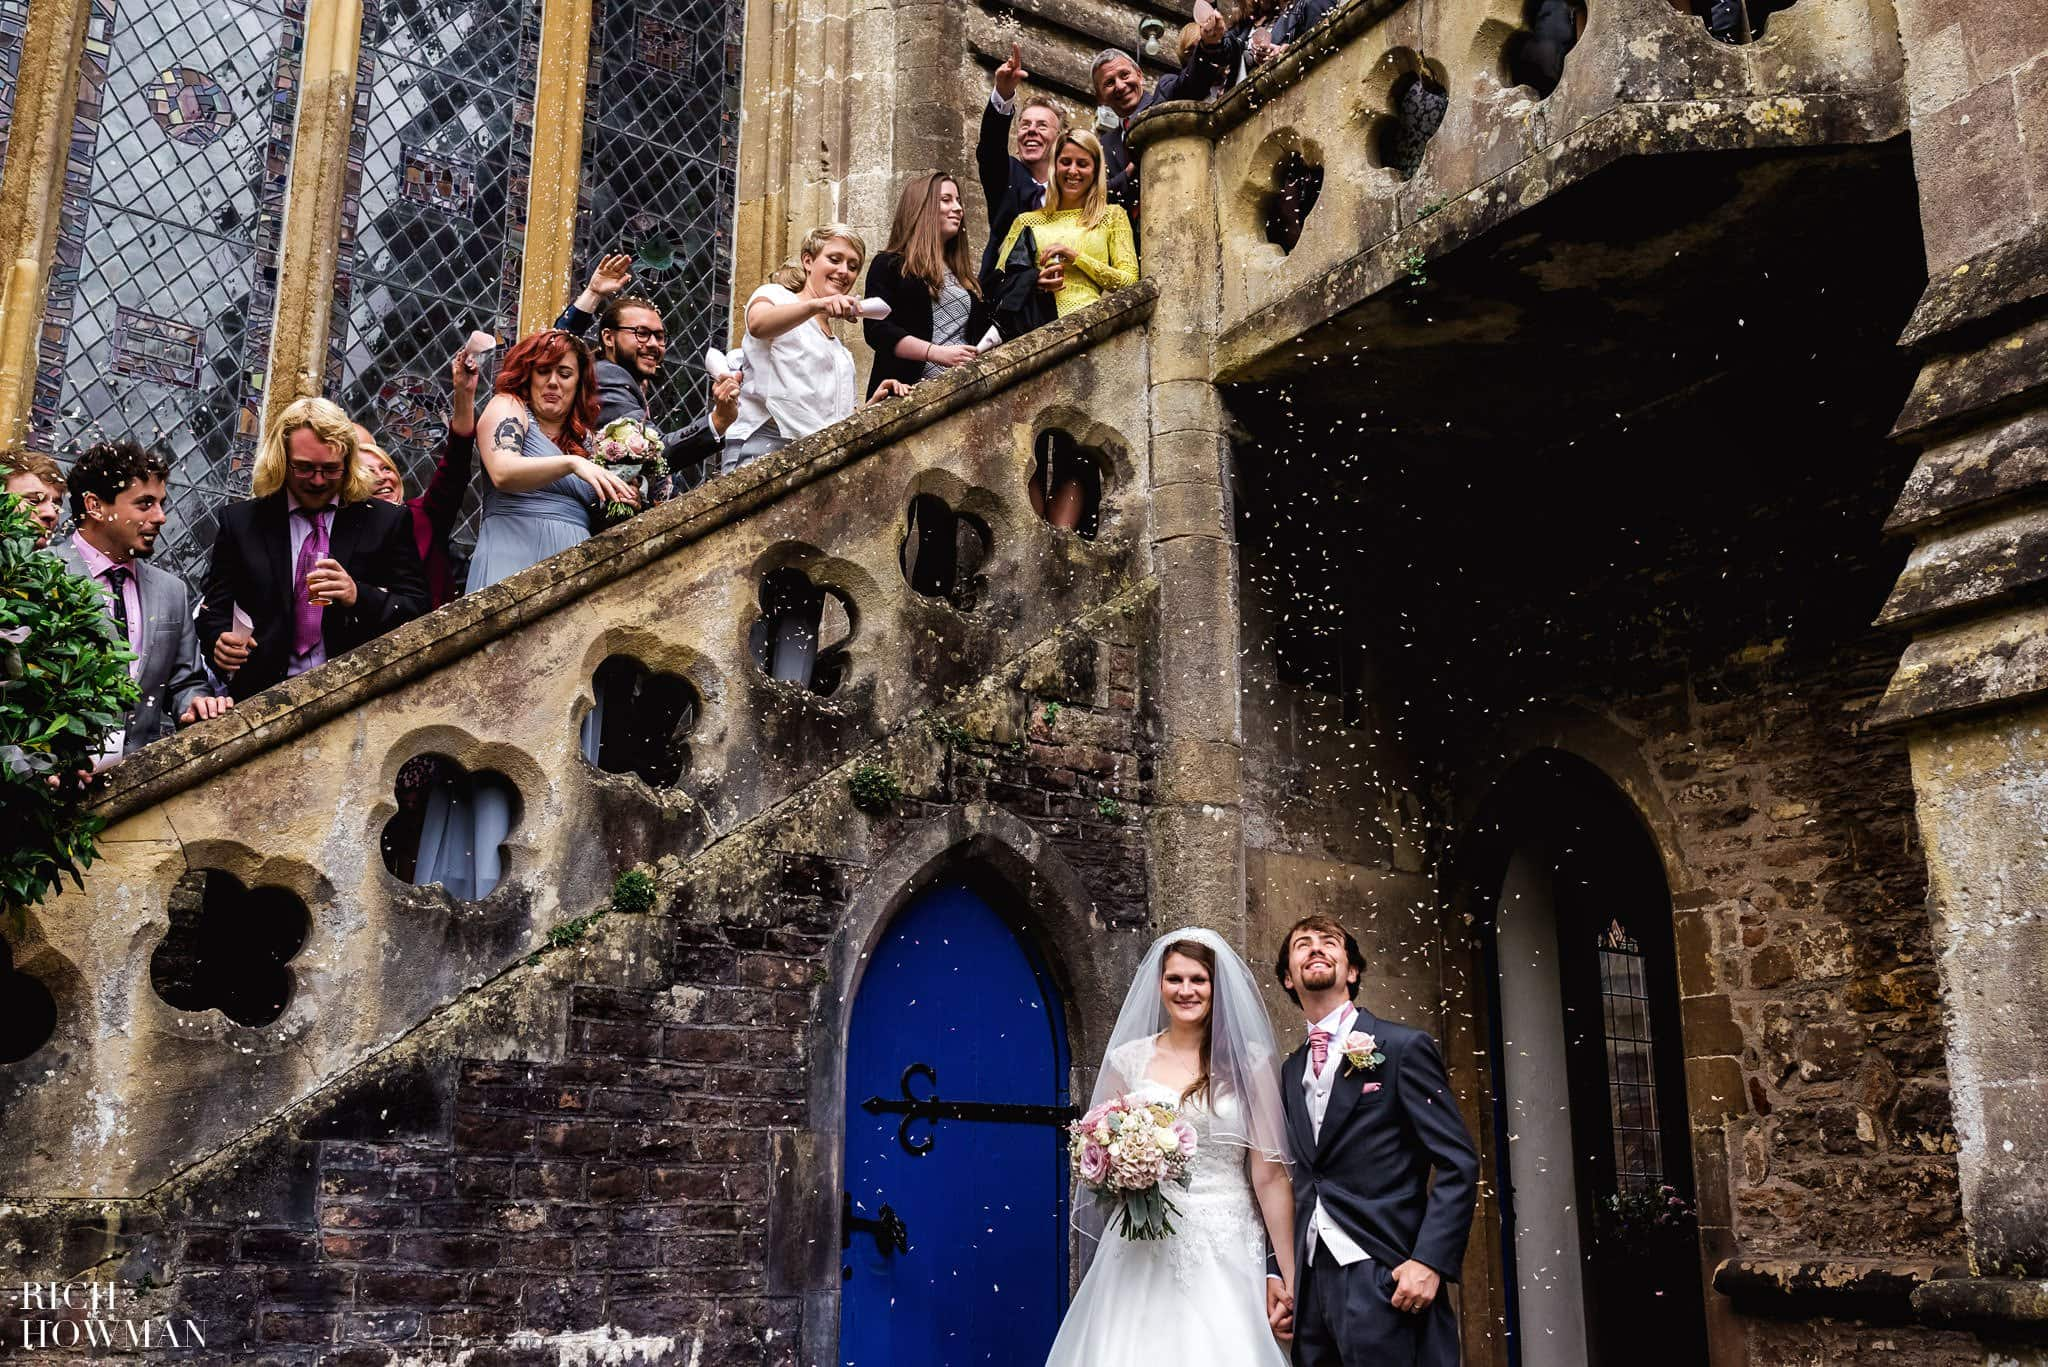 Confetti being thrown from the staircase at the Bishops Palace over the Bride and Groom